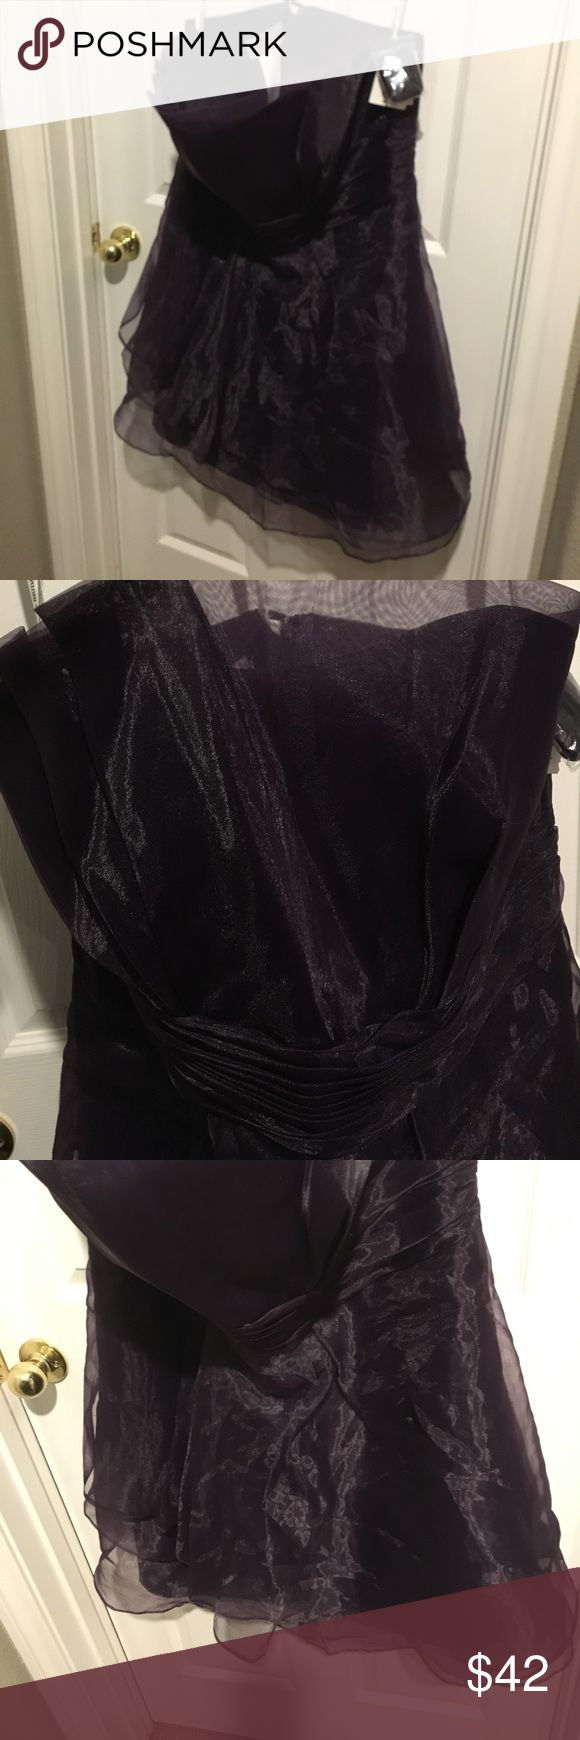 NWT David's Bridal Strapless Organza Dress Lapis NWT David's Bridal Strapless Organza dress in Lapis Size 18 . Ruffles in front of skirt  , ruched waist . Fully lined . Zips up the back . No flaws, stains, tears or defects. Comes with bag with strap in case you want to wear it as a halter if you need more support 👌🌷Gorgeous David's Bridal Dresses Strapless